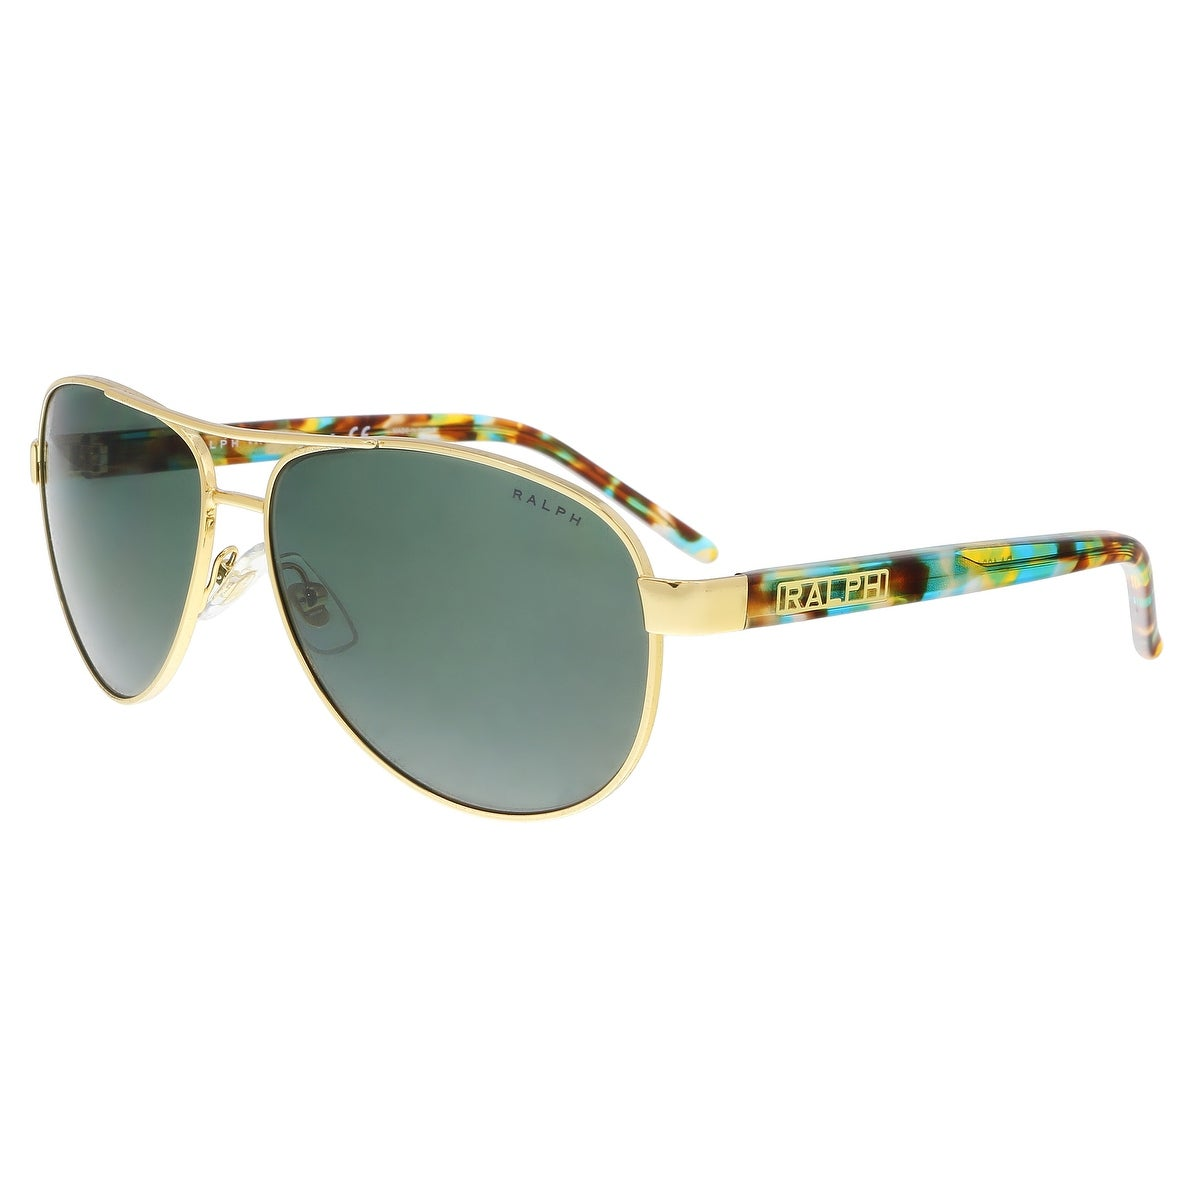 69a1abb03c0 Shop Ralph Lauren RA4004 900471 Gold Aviator Sunglasses - 59-13-130 ...